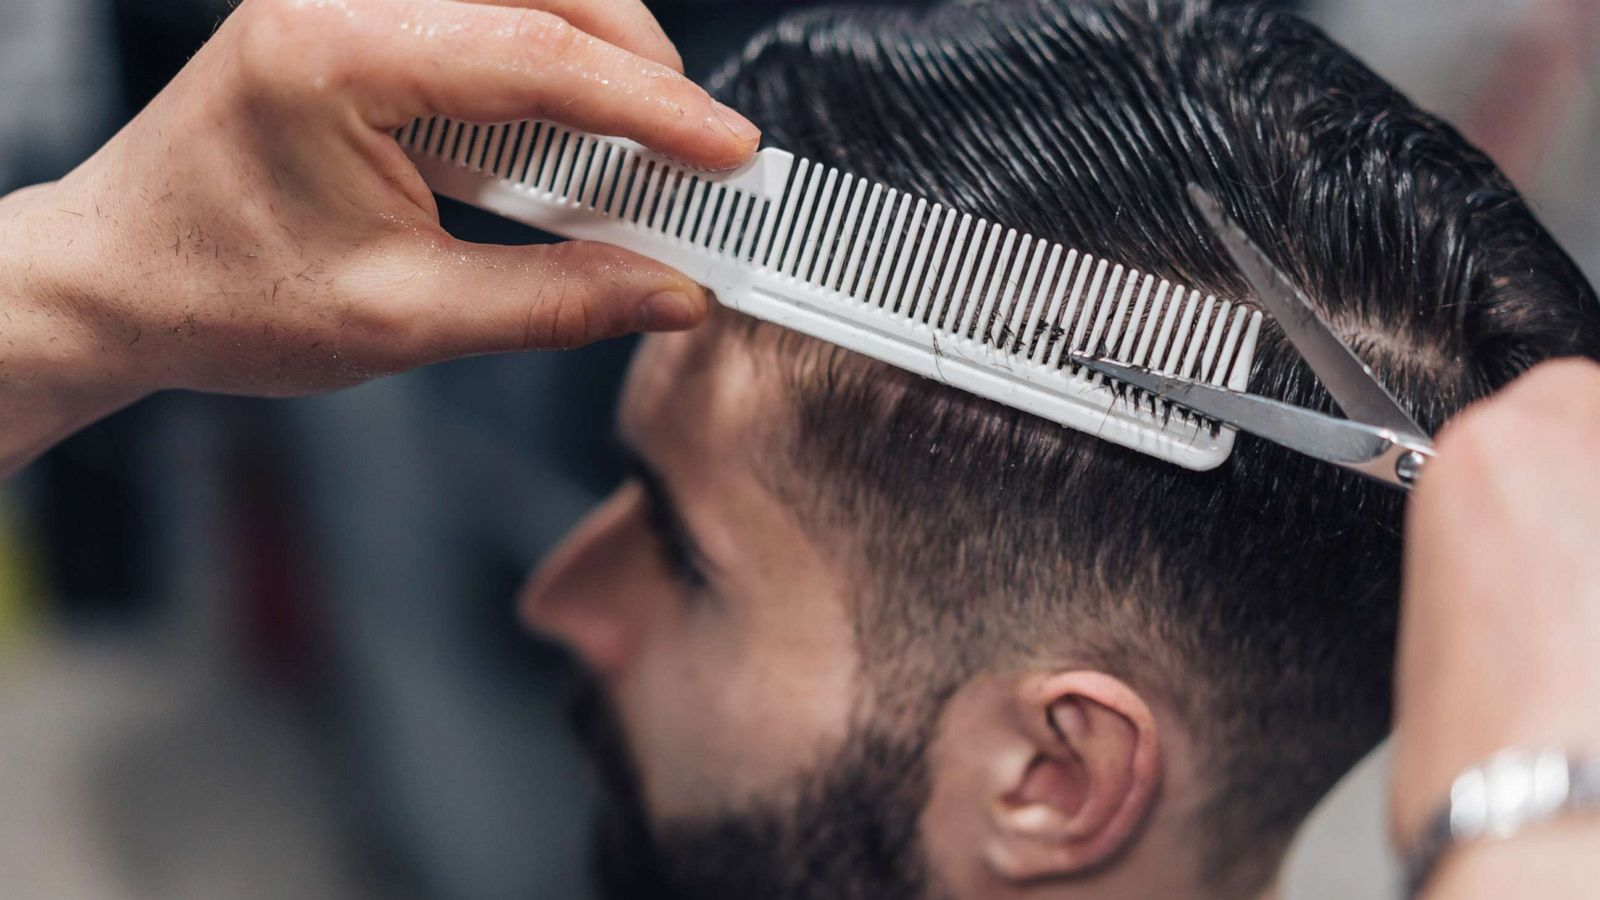 How To Cut Men S Hair From Home According To Celebrity Hairstylist Kristan Serafino Gma